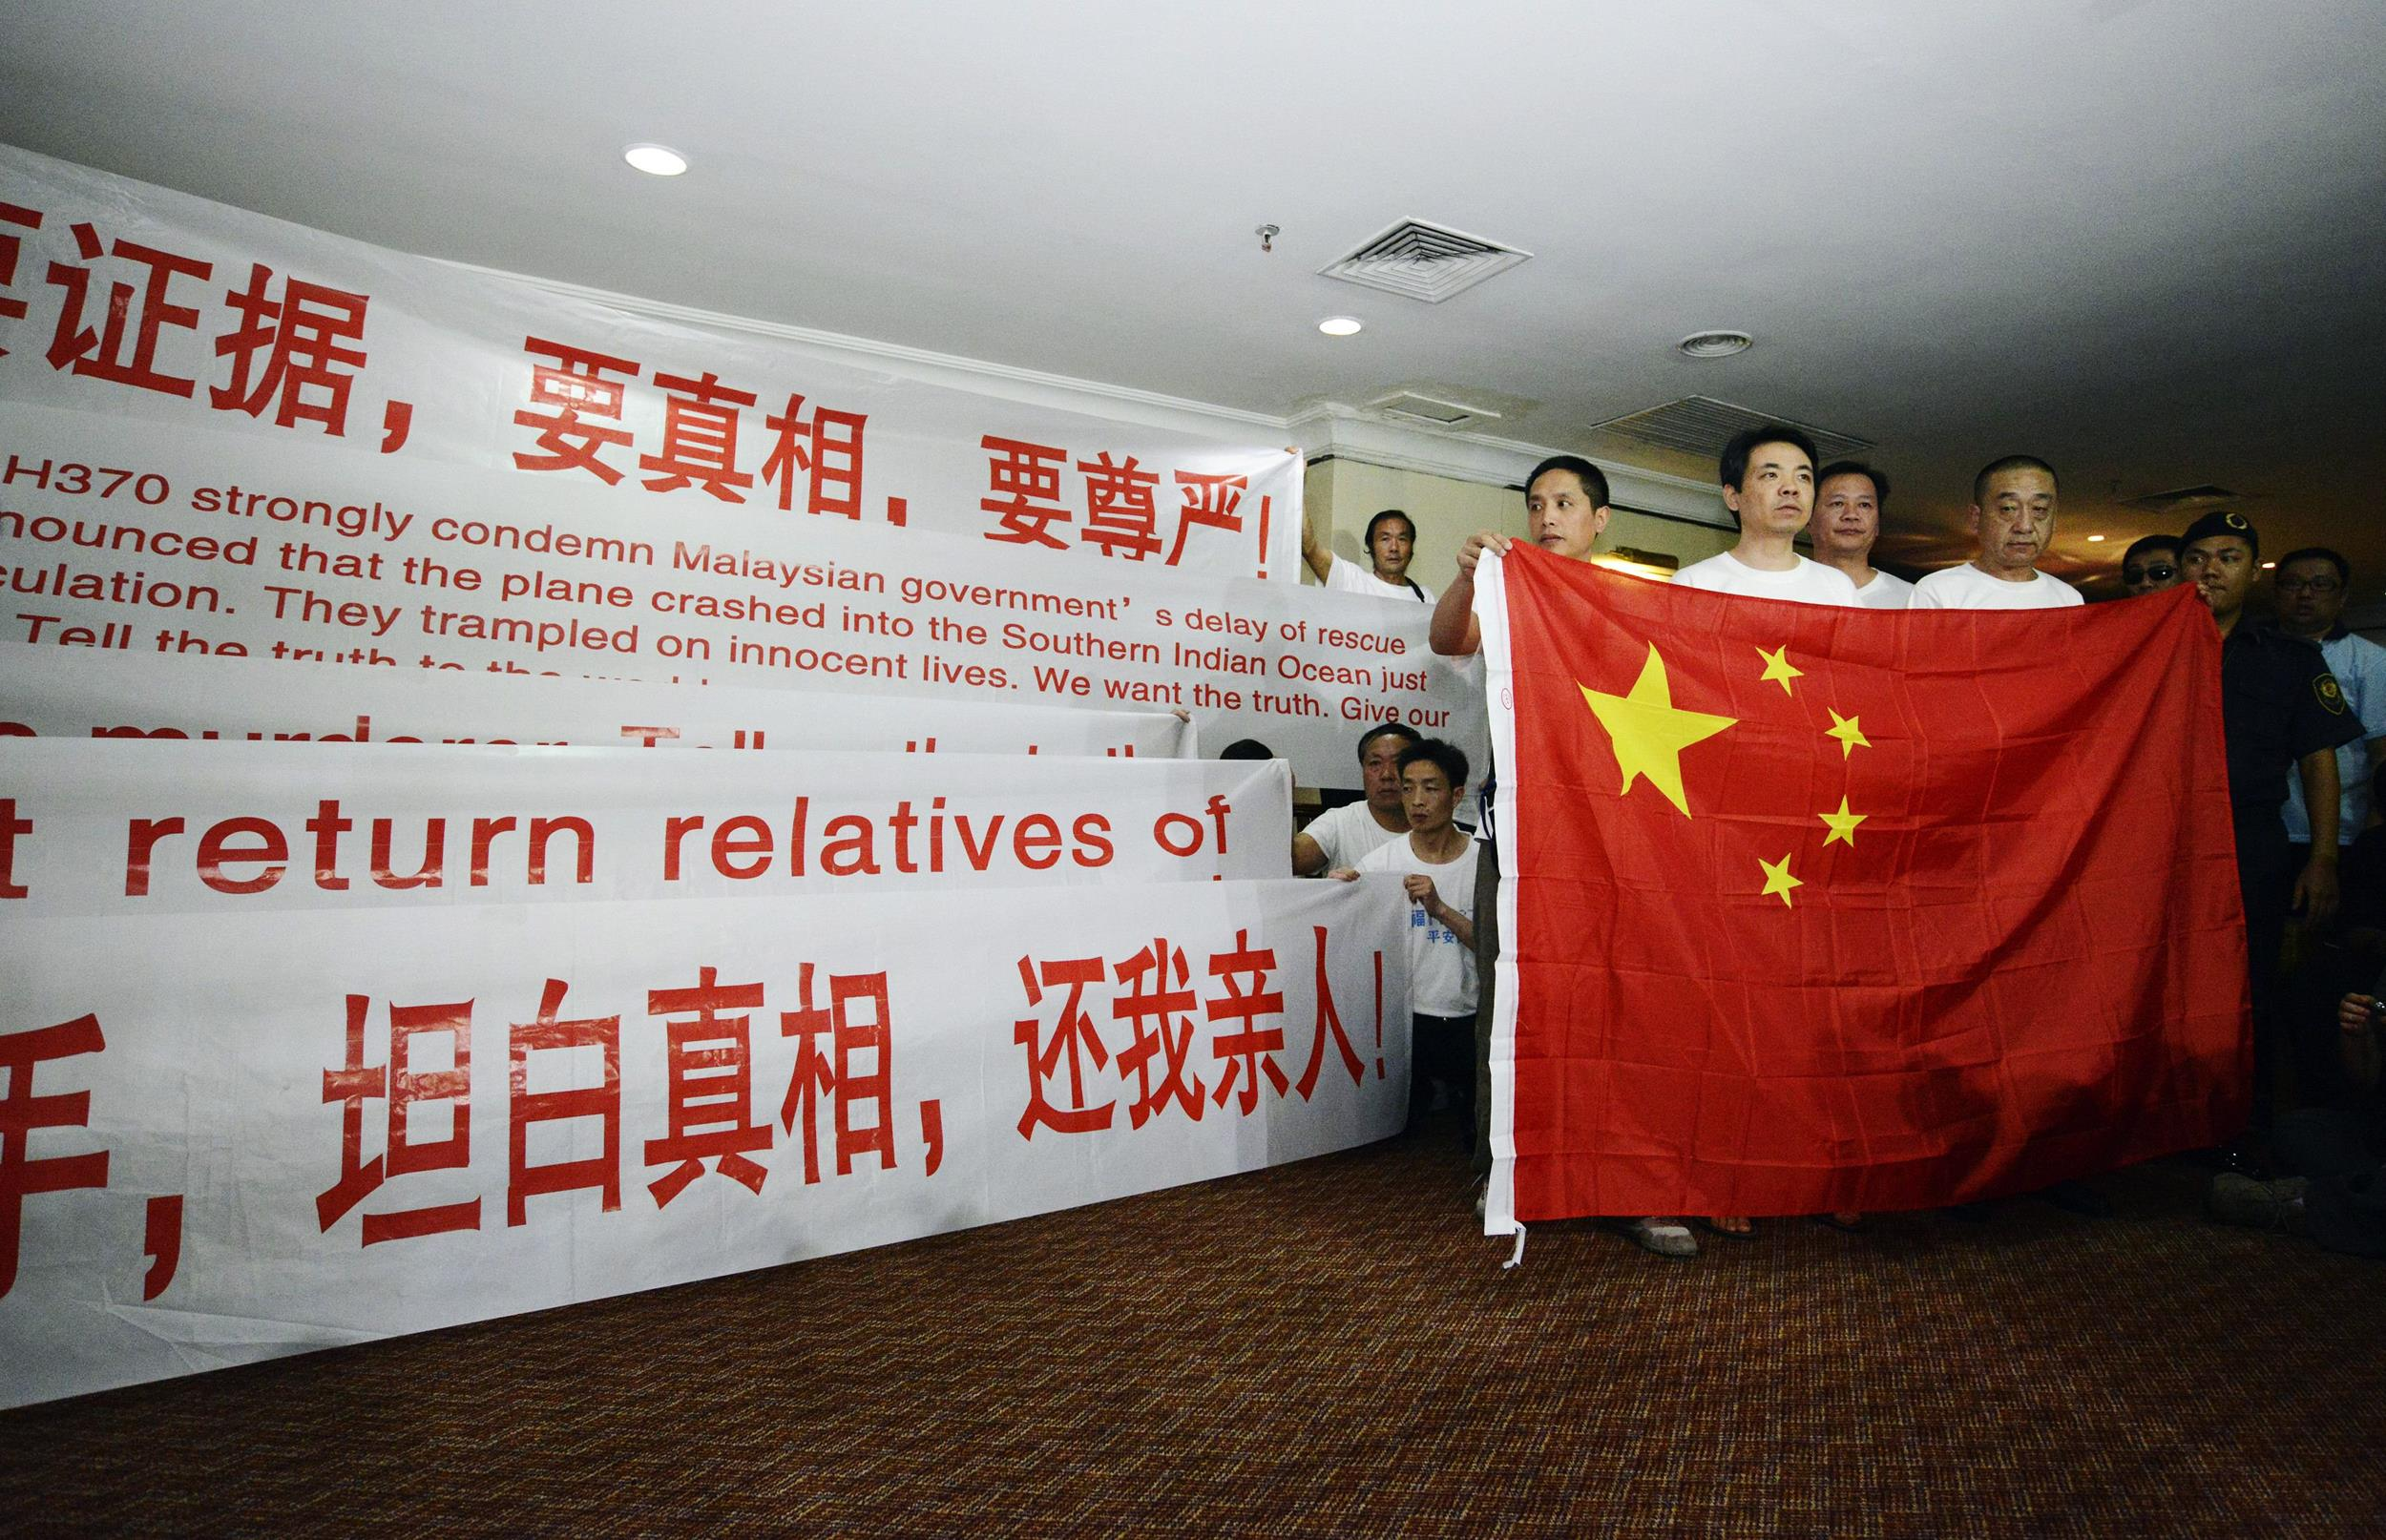 Image: Chinese relatives of passengers from missing Malaysia Airlines flight MH370 display banners and the Chinese flag